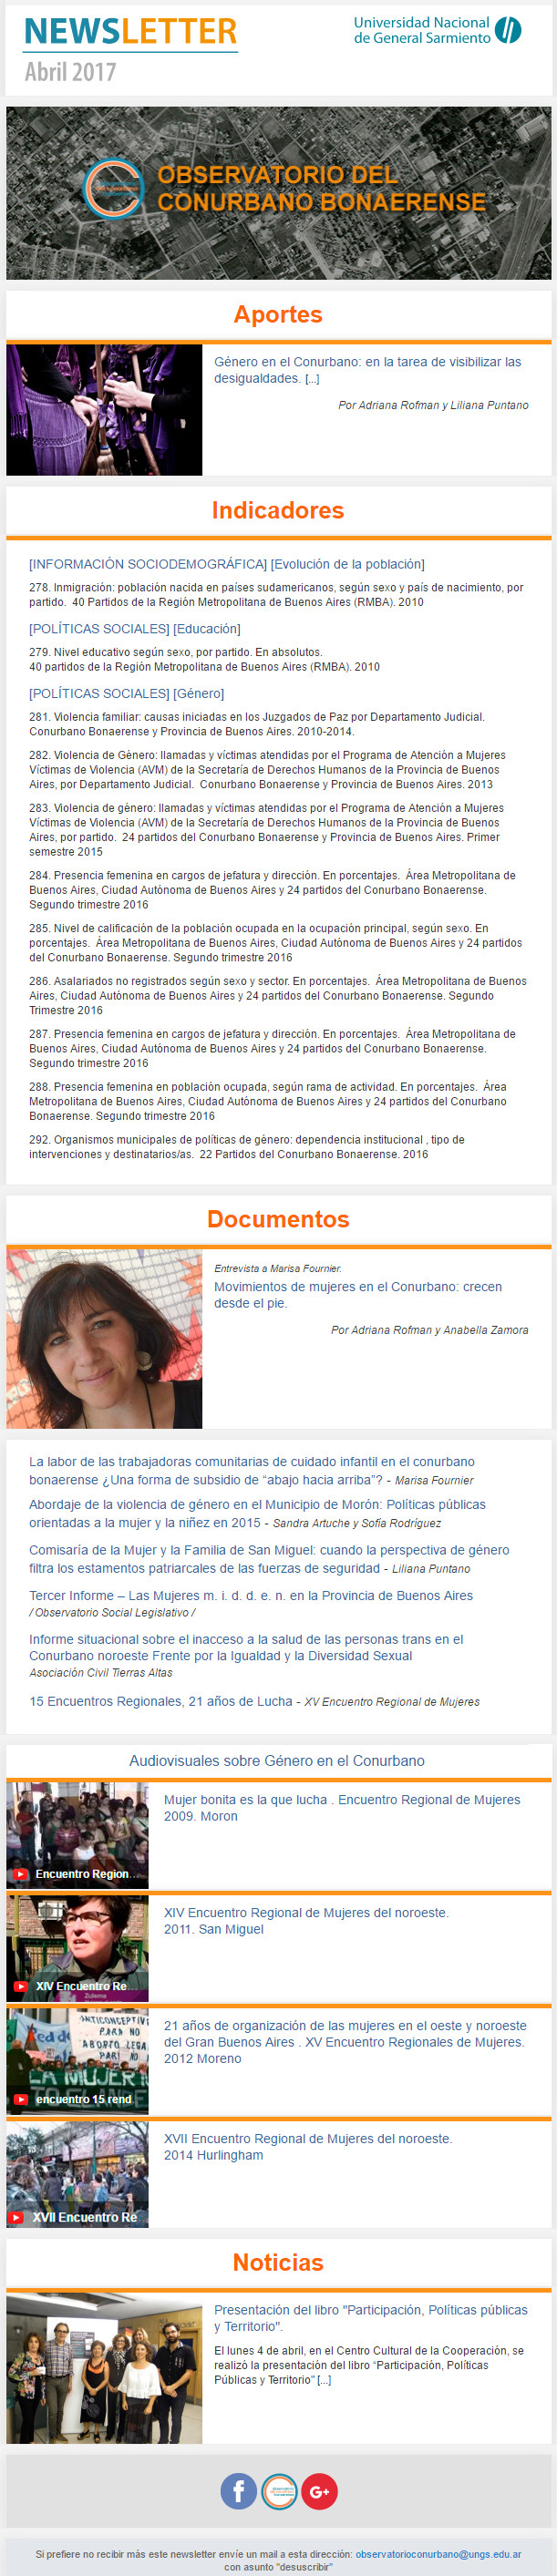 Newsletter abril 2017